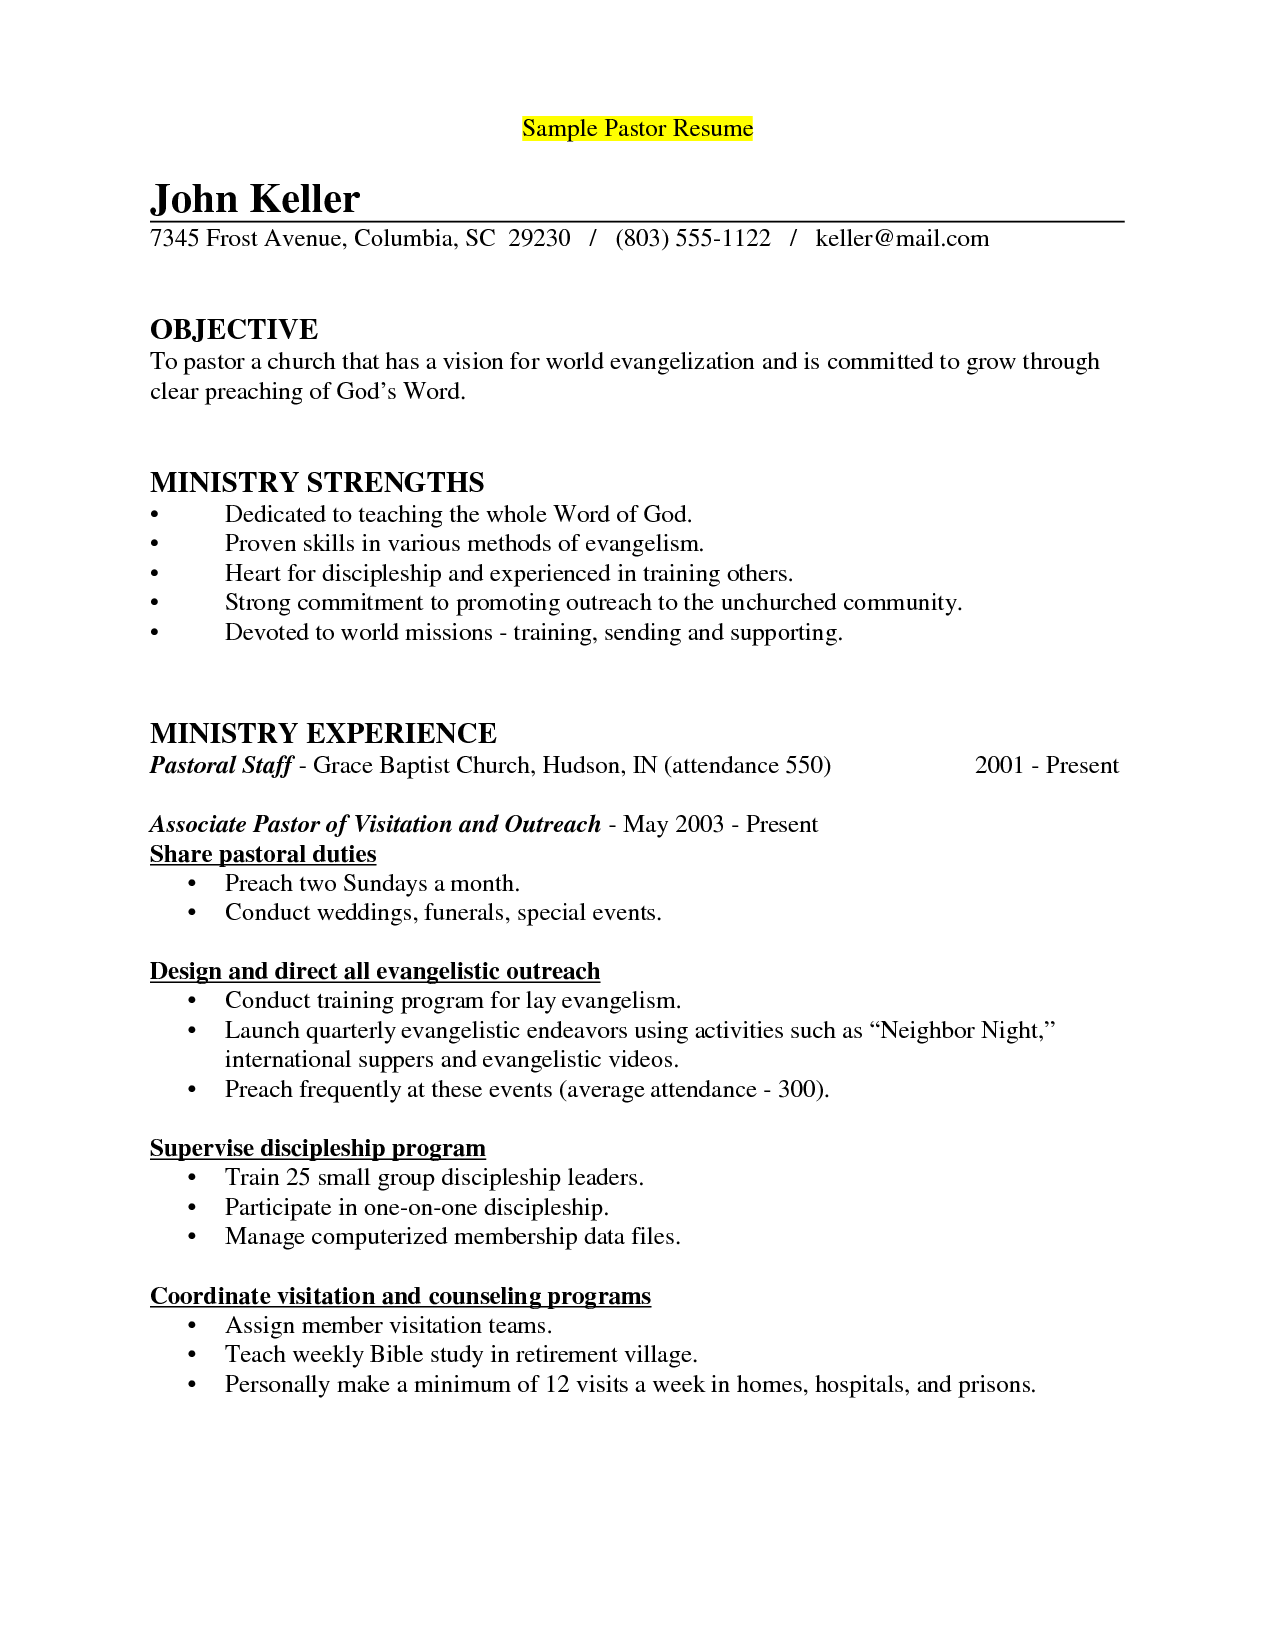 sample pastor resume template sample pastoral resume sample resume for pastors